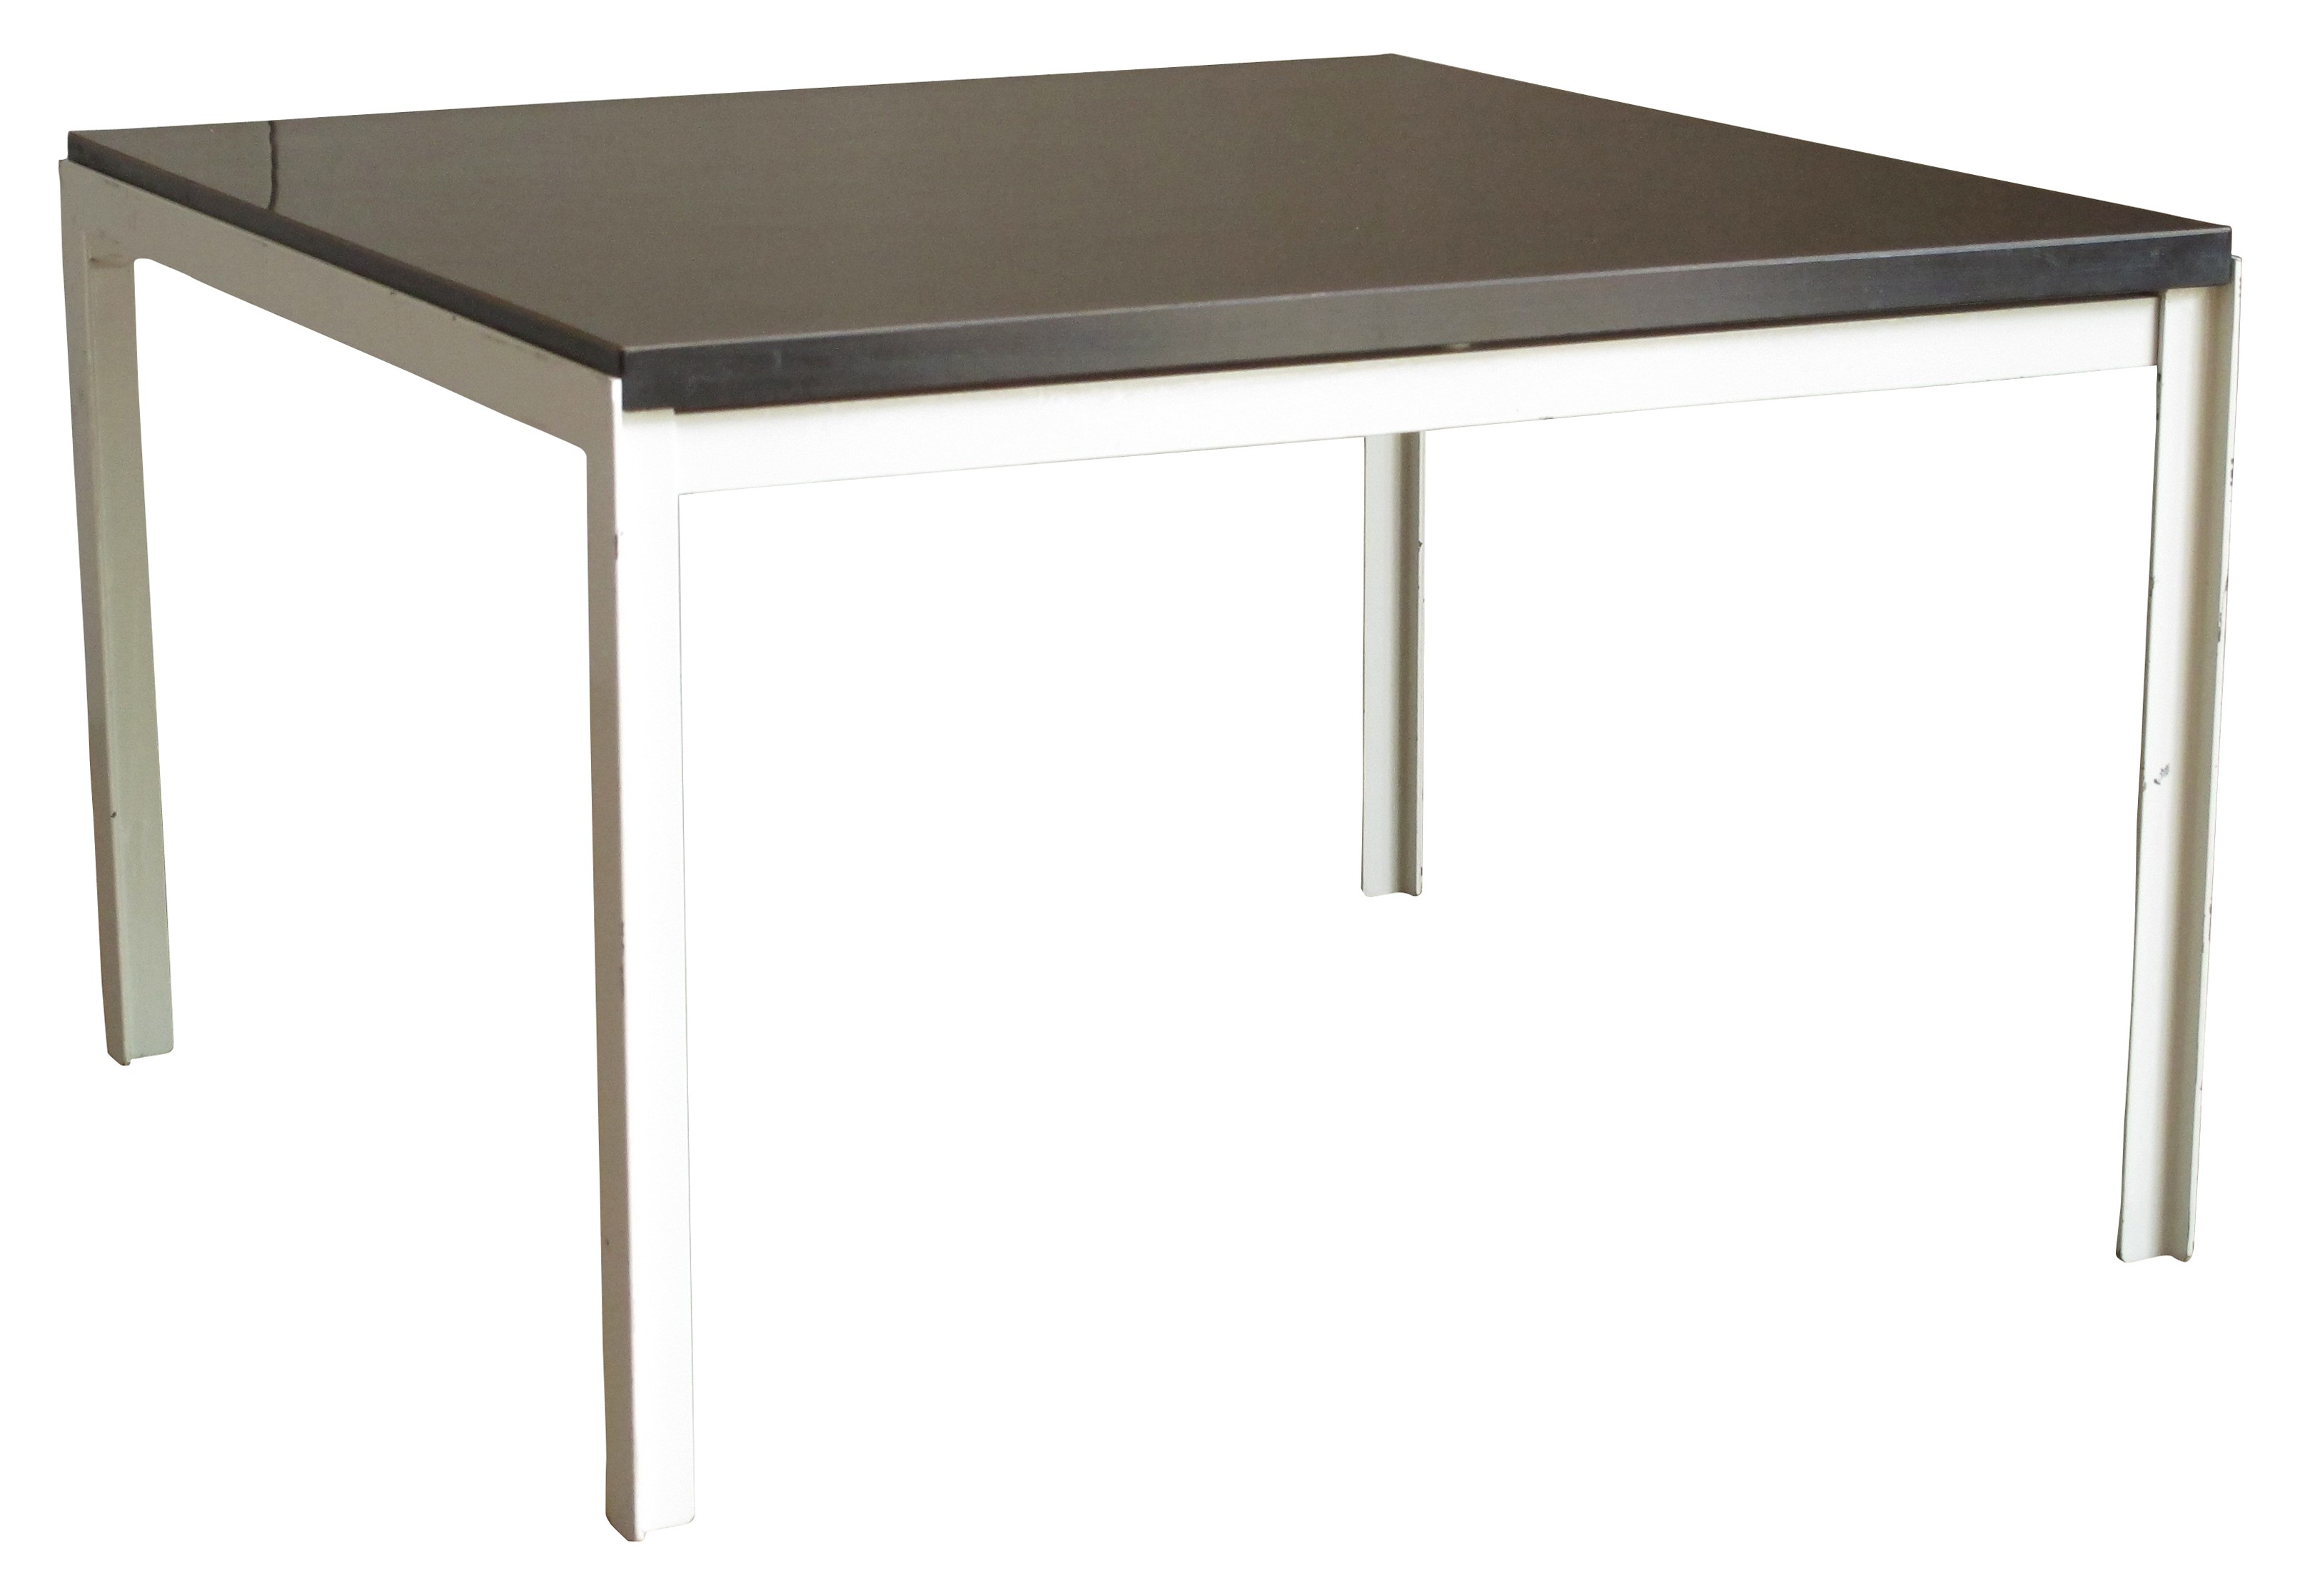 Ampm Table Marbre Table Basse Marbre Florence Knoll With Table Basse Knoll